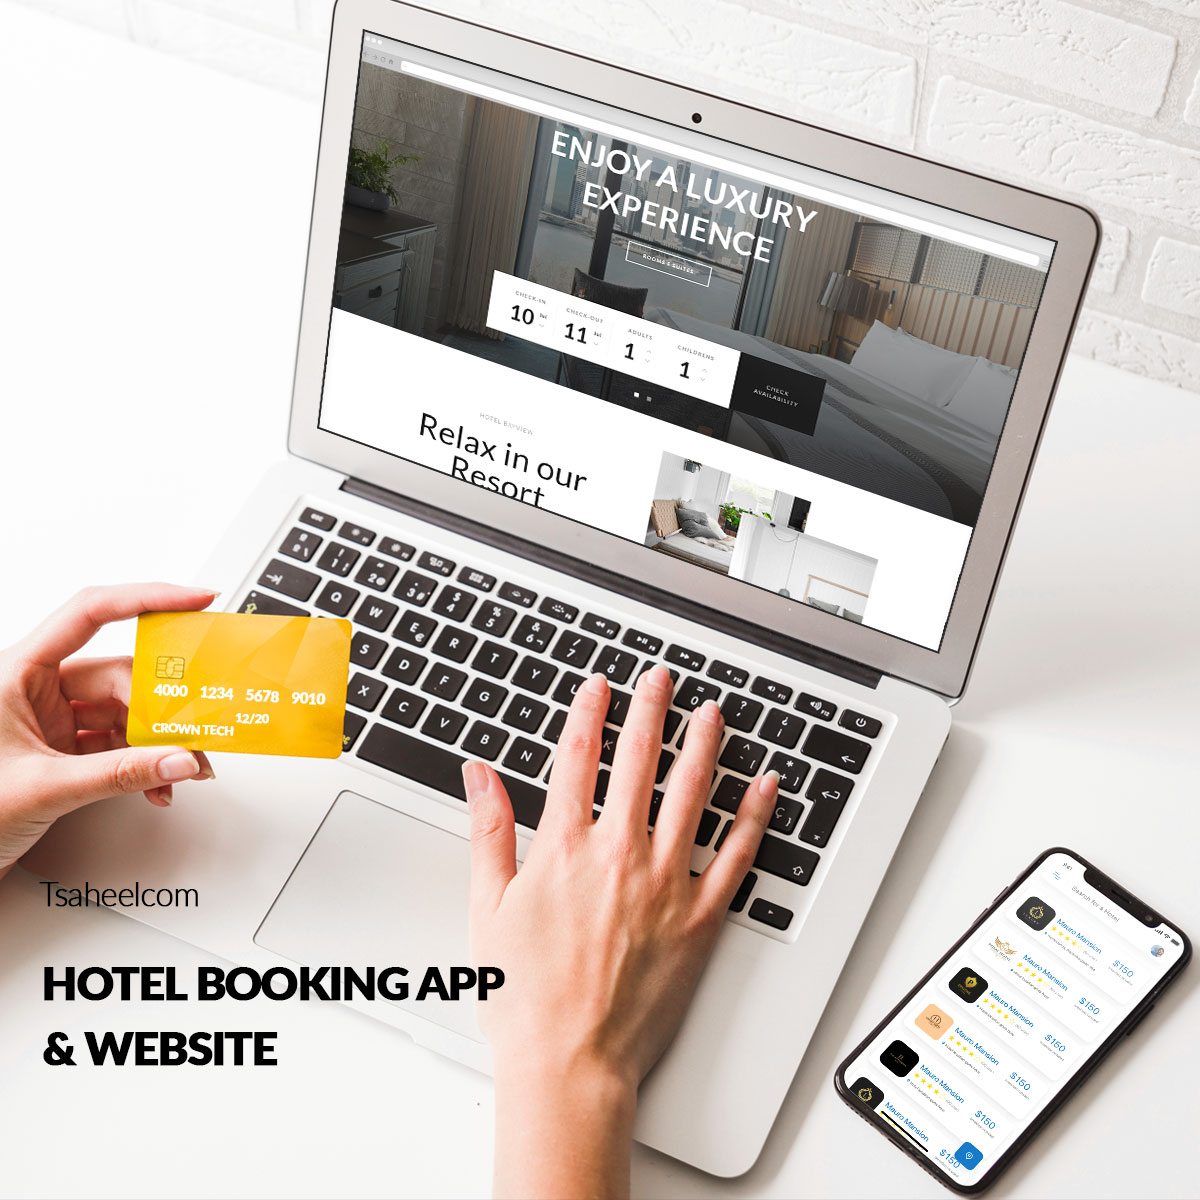 Hotel Booking App & Website